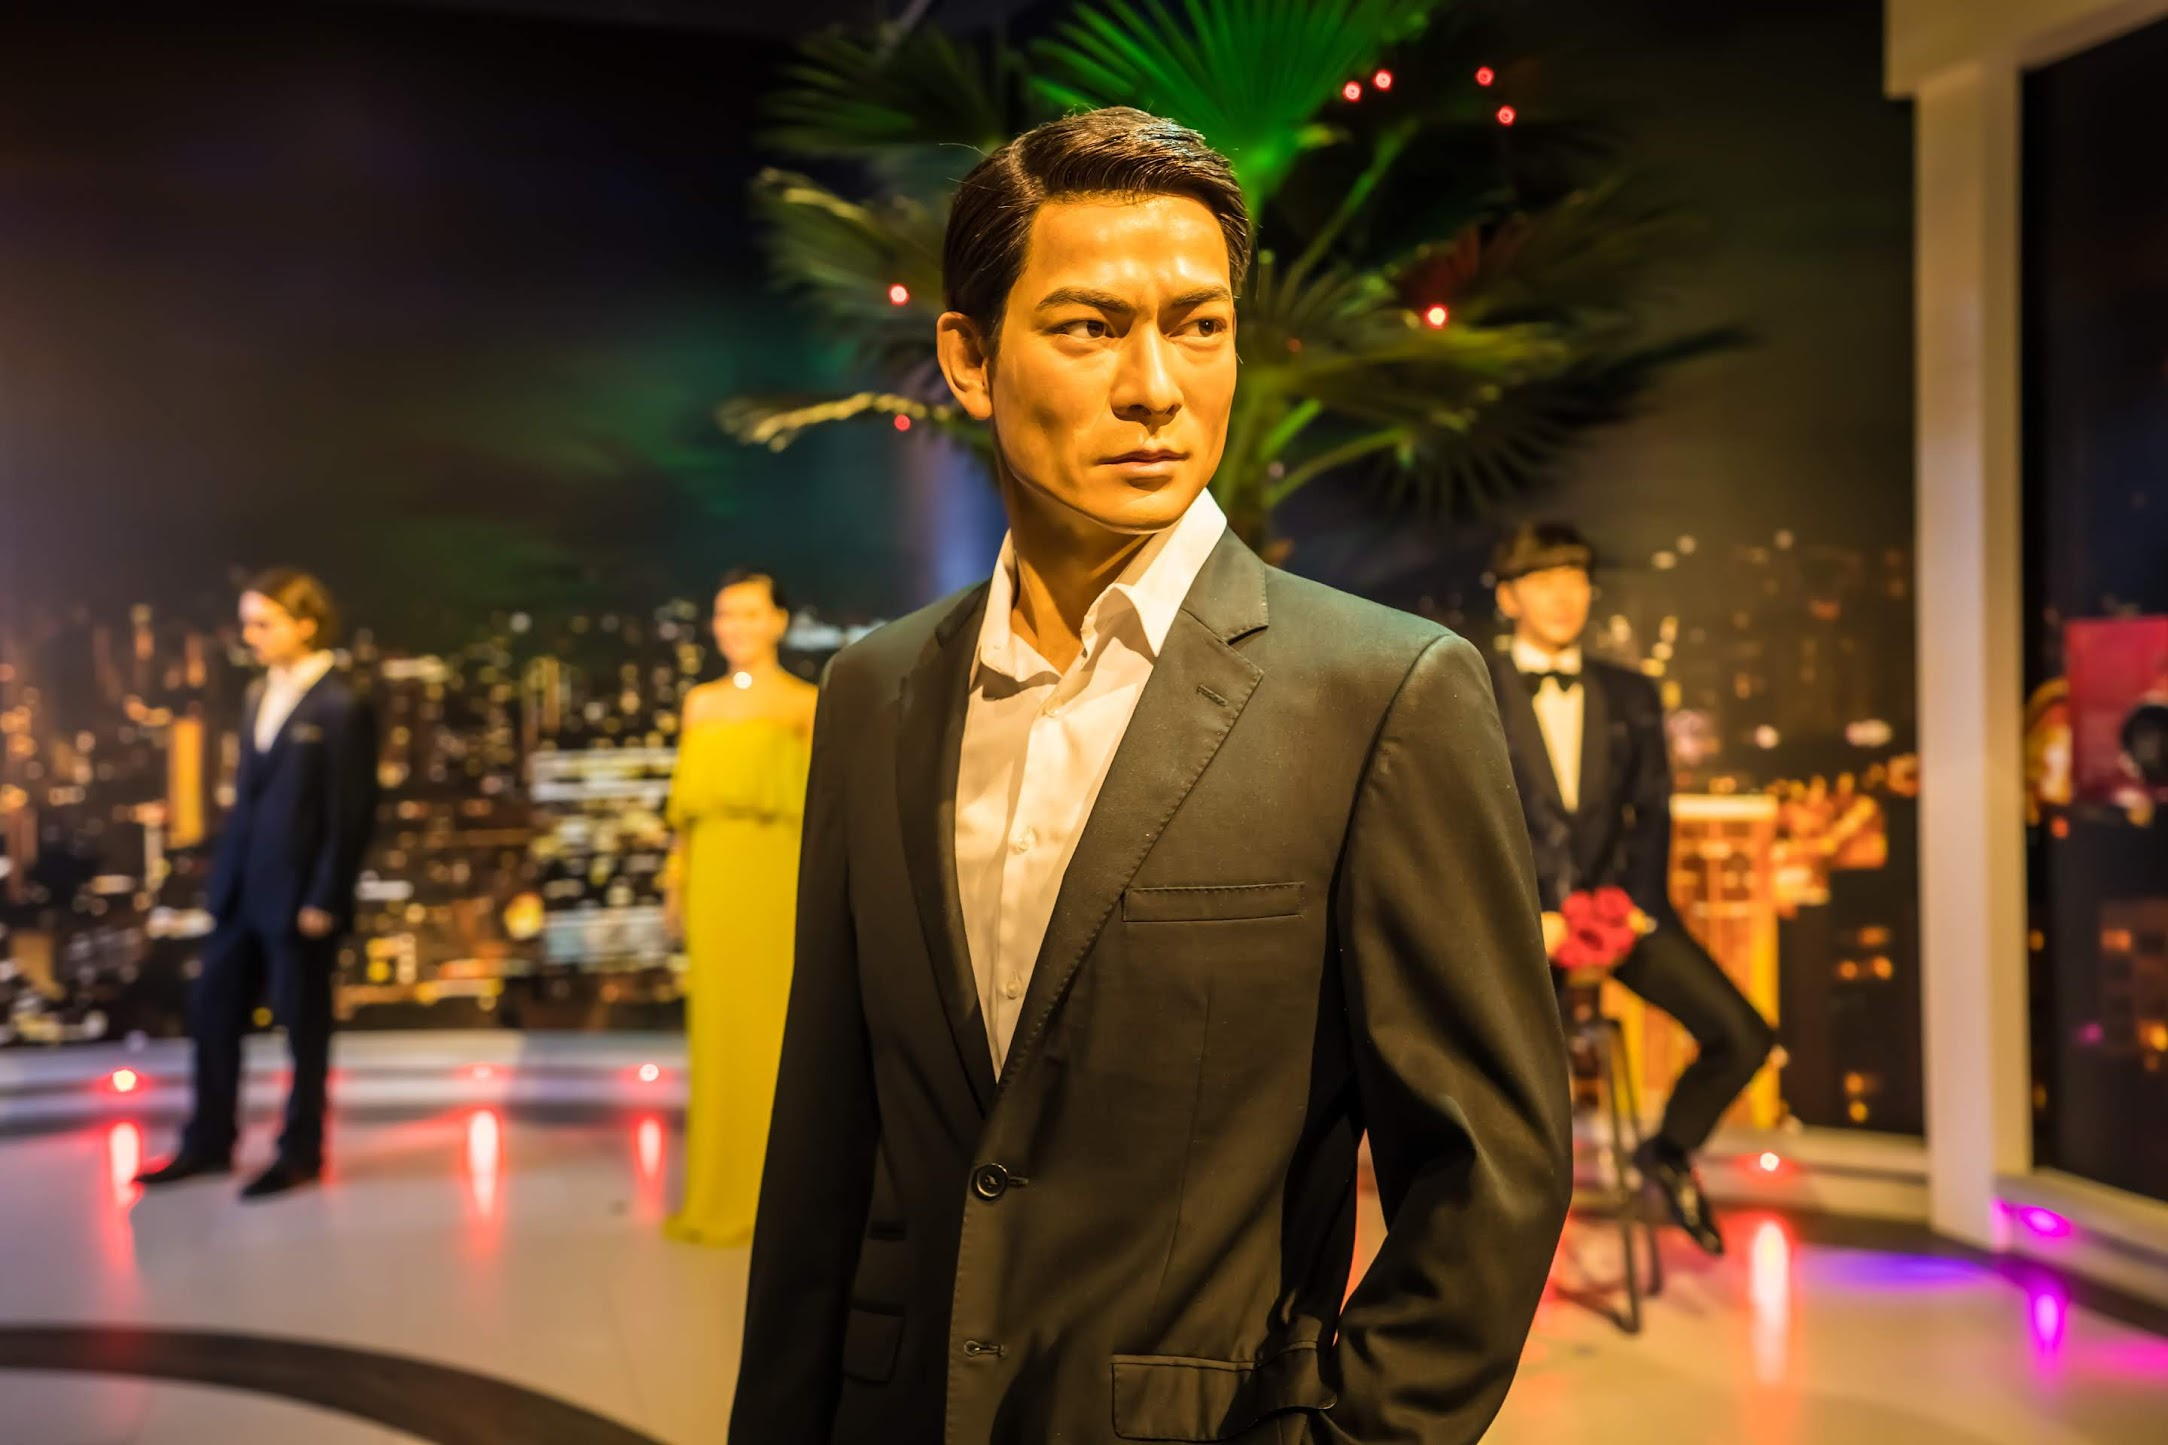 Singapore Sentosa Island Madame Tussauds Singapore Andy Lau